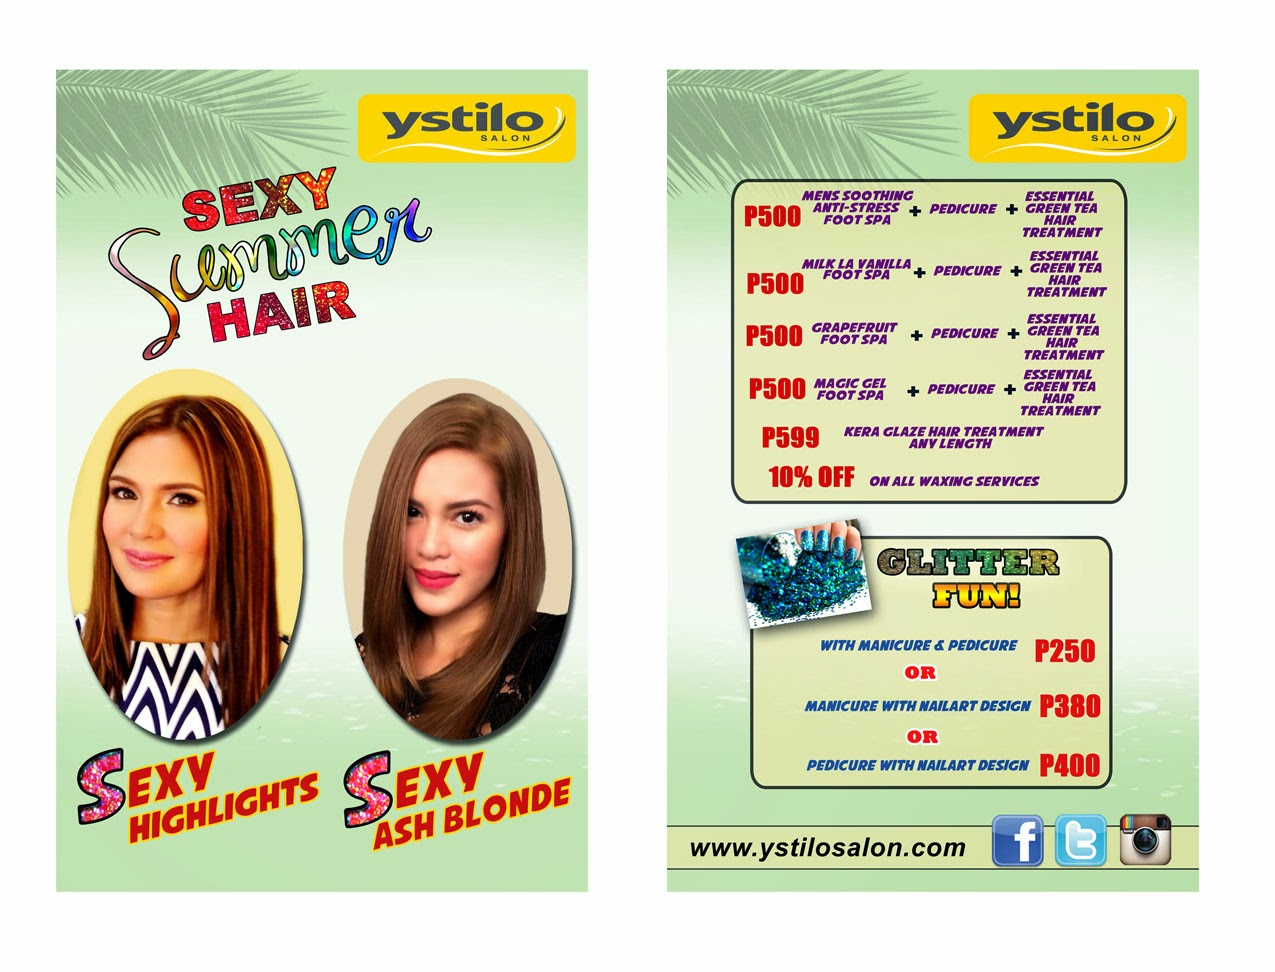 Hair Color In Ystilo Salon